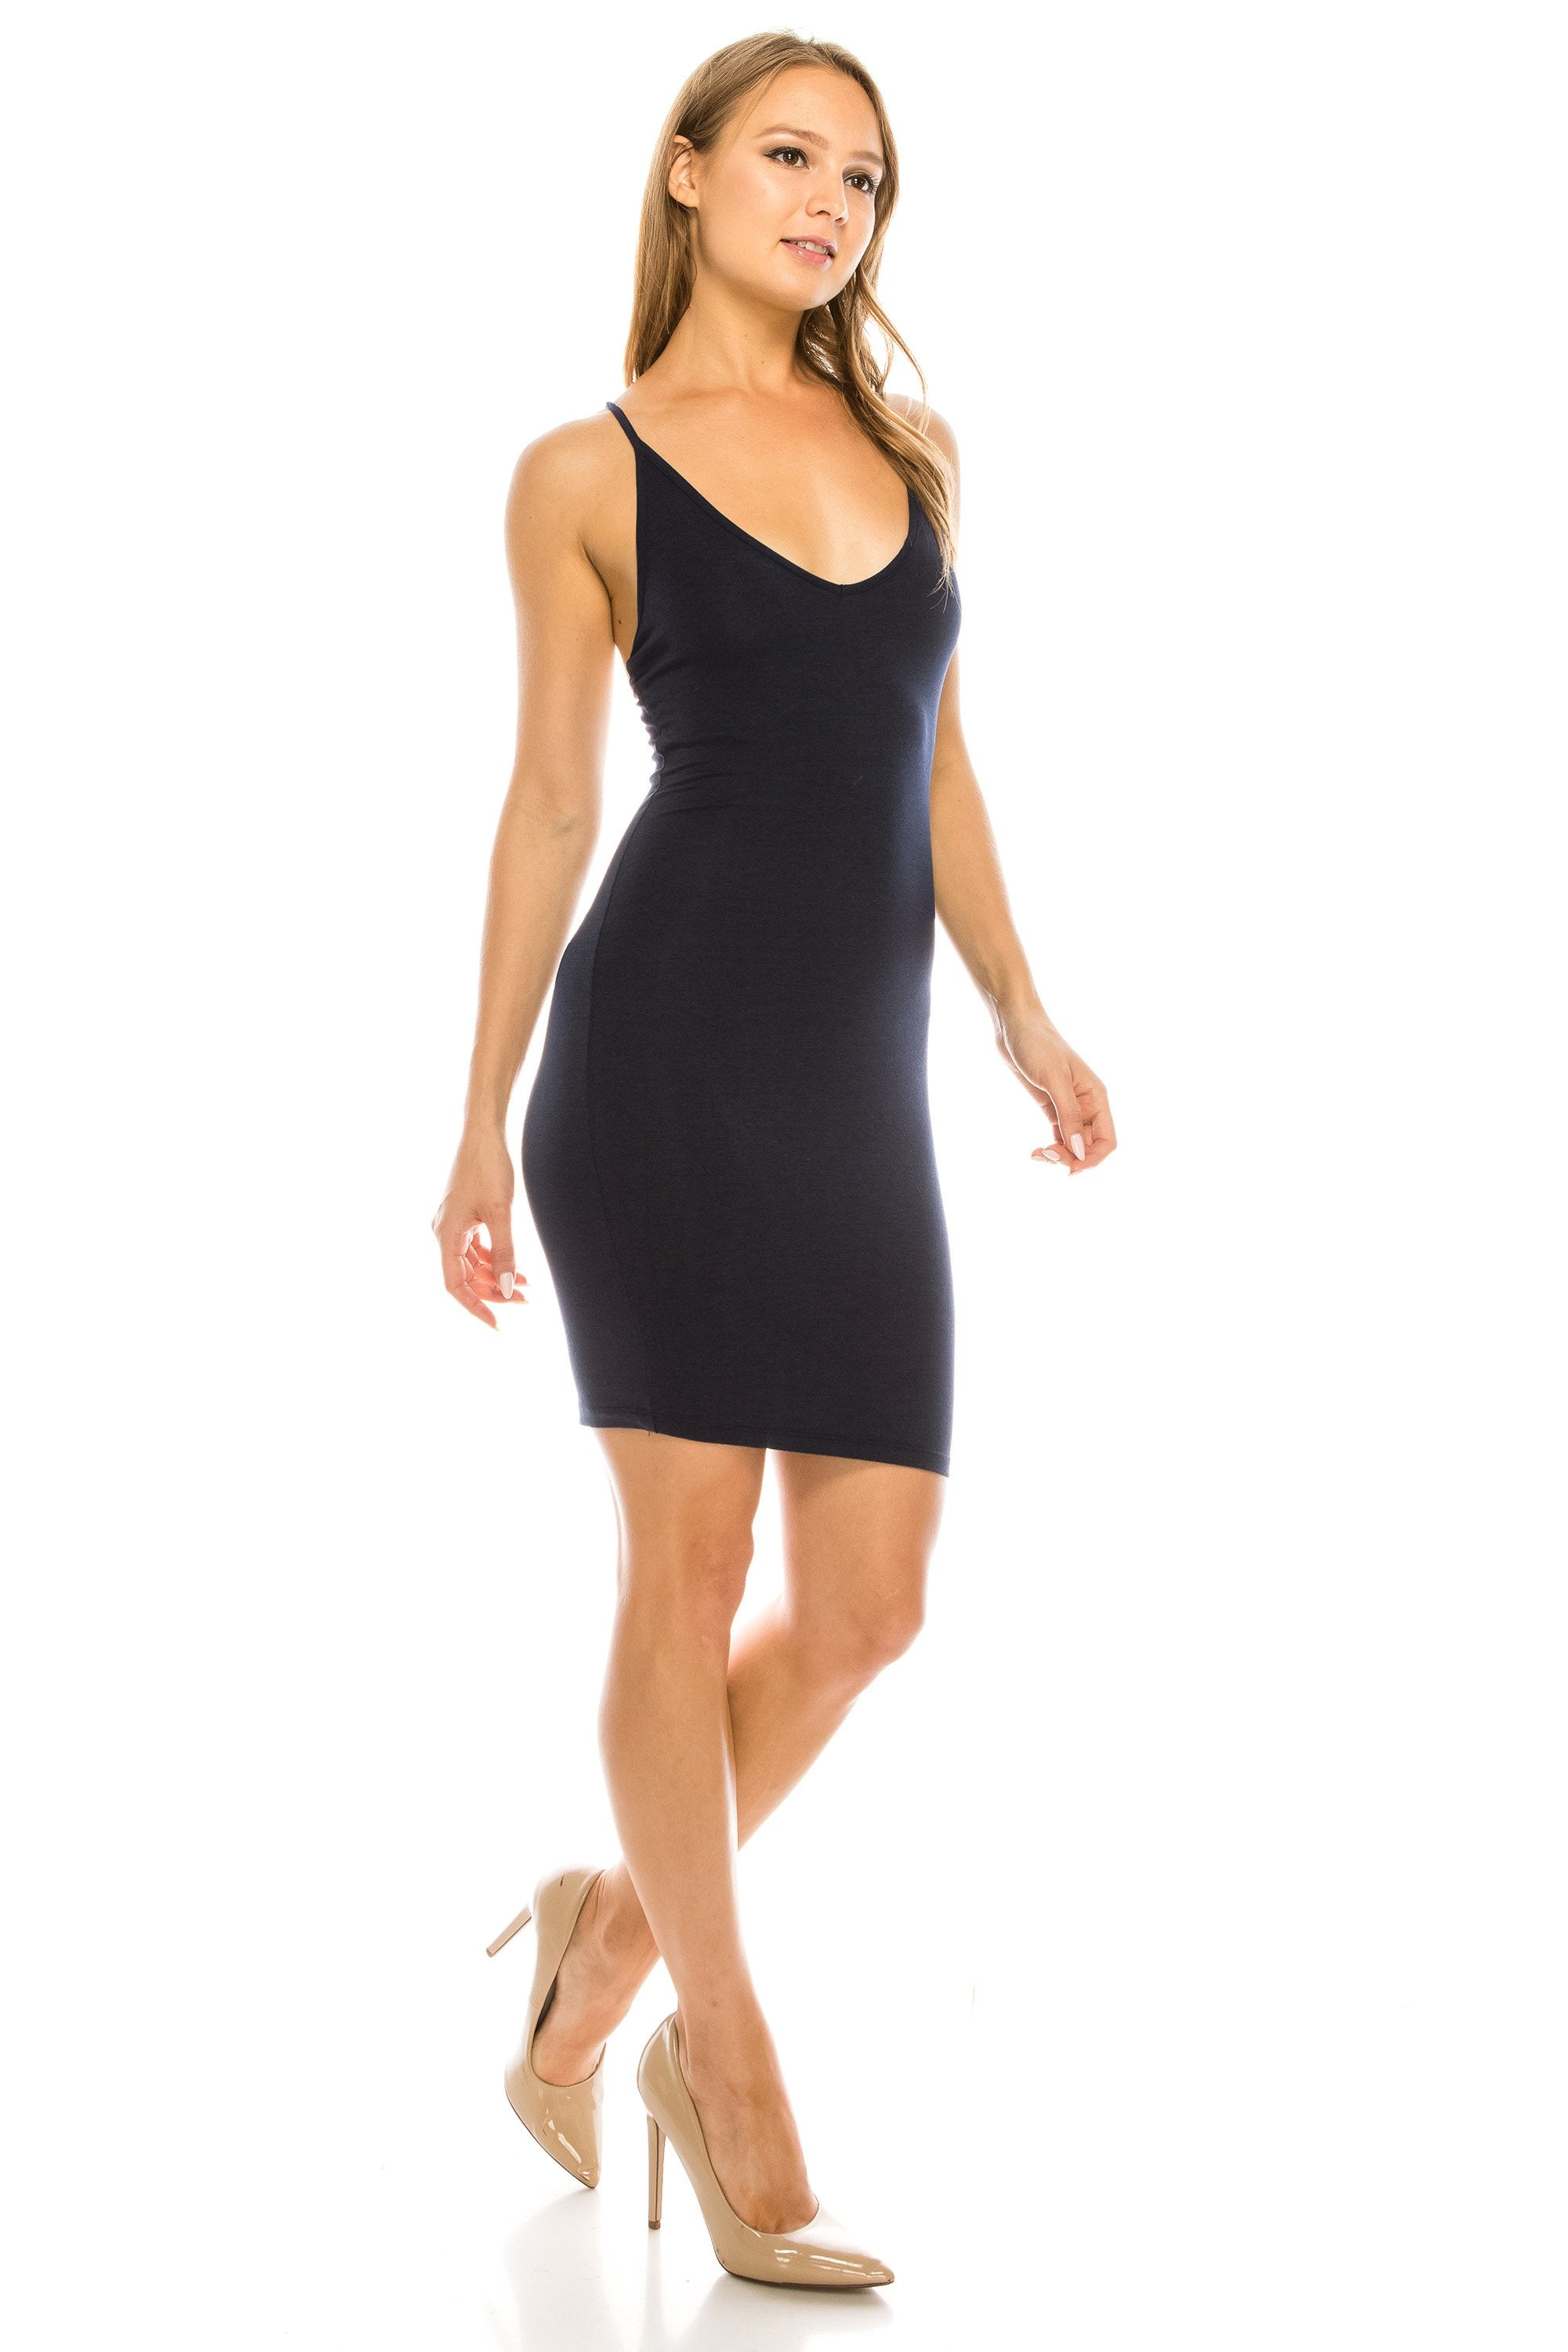 Women's Basic Casual V neck Strappy Bodycon Curve Fitting Dress